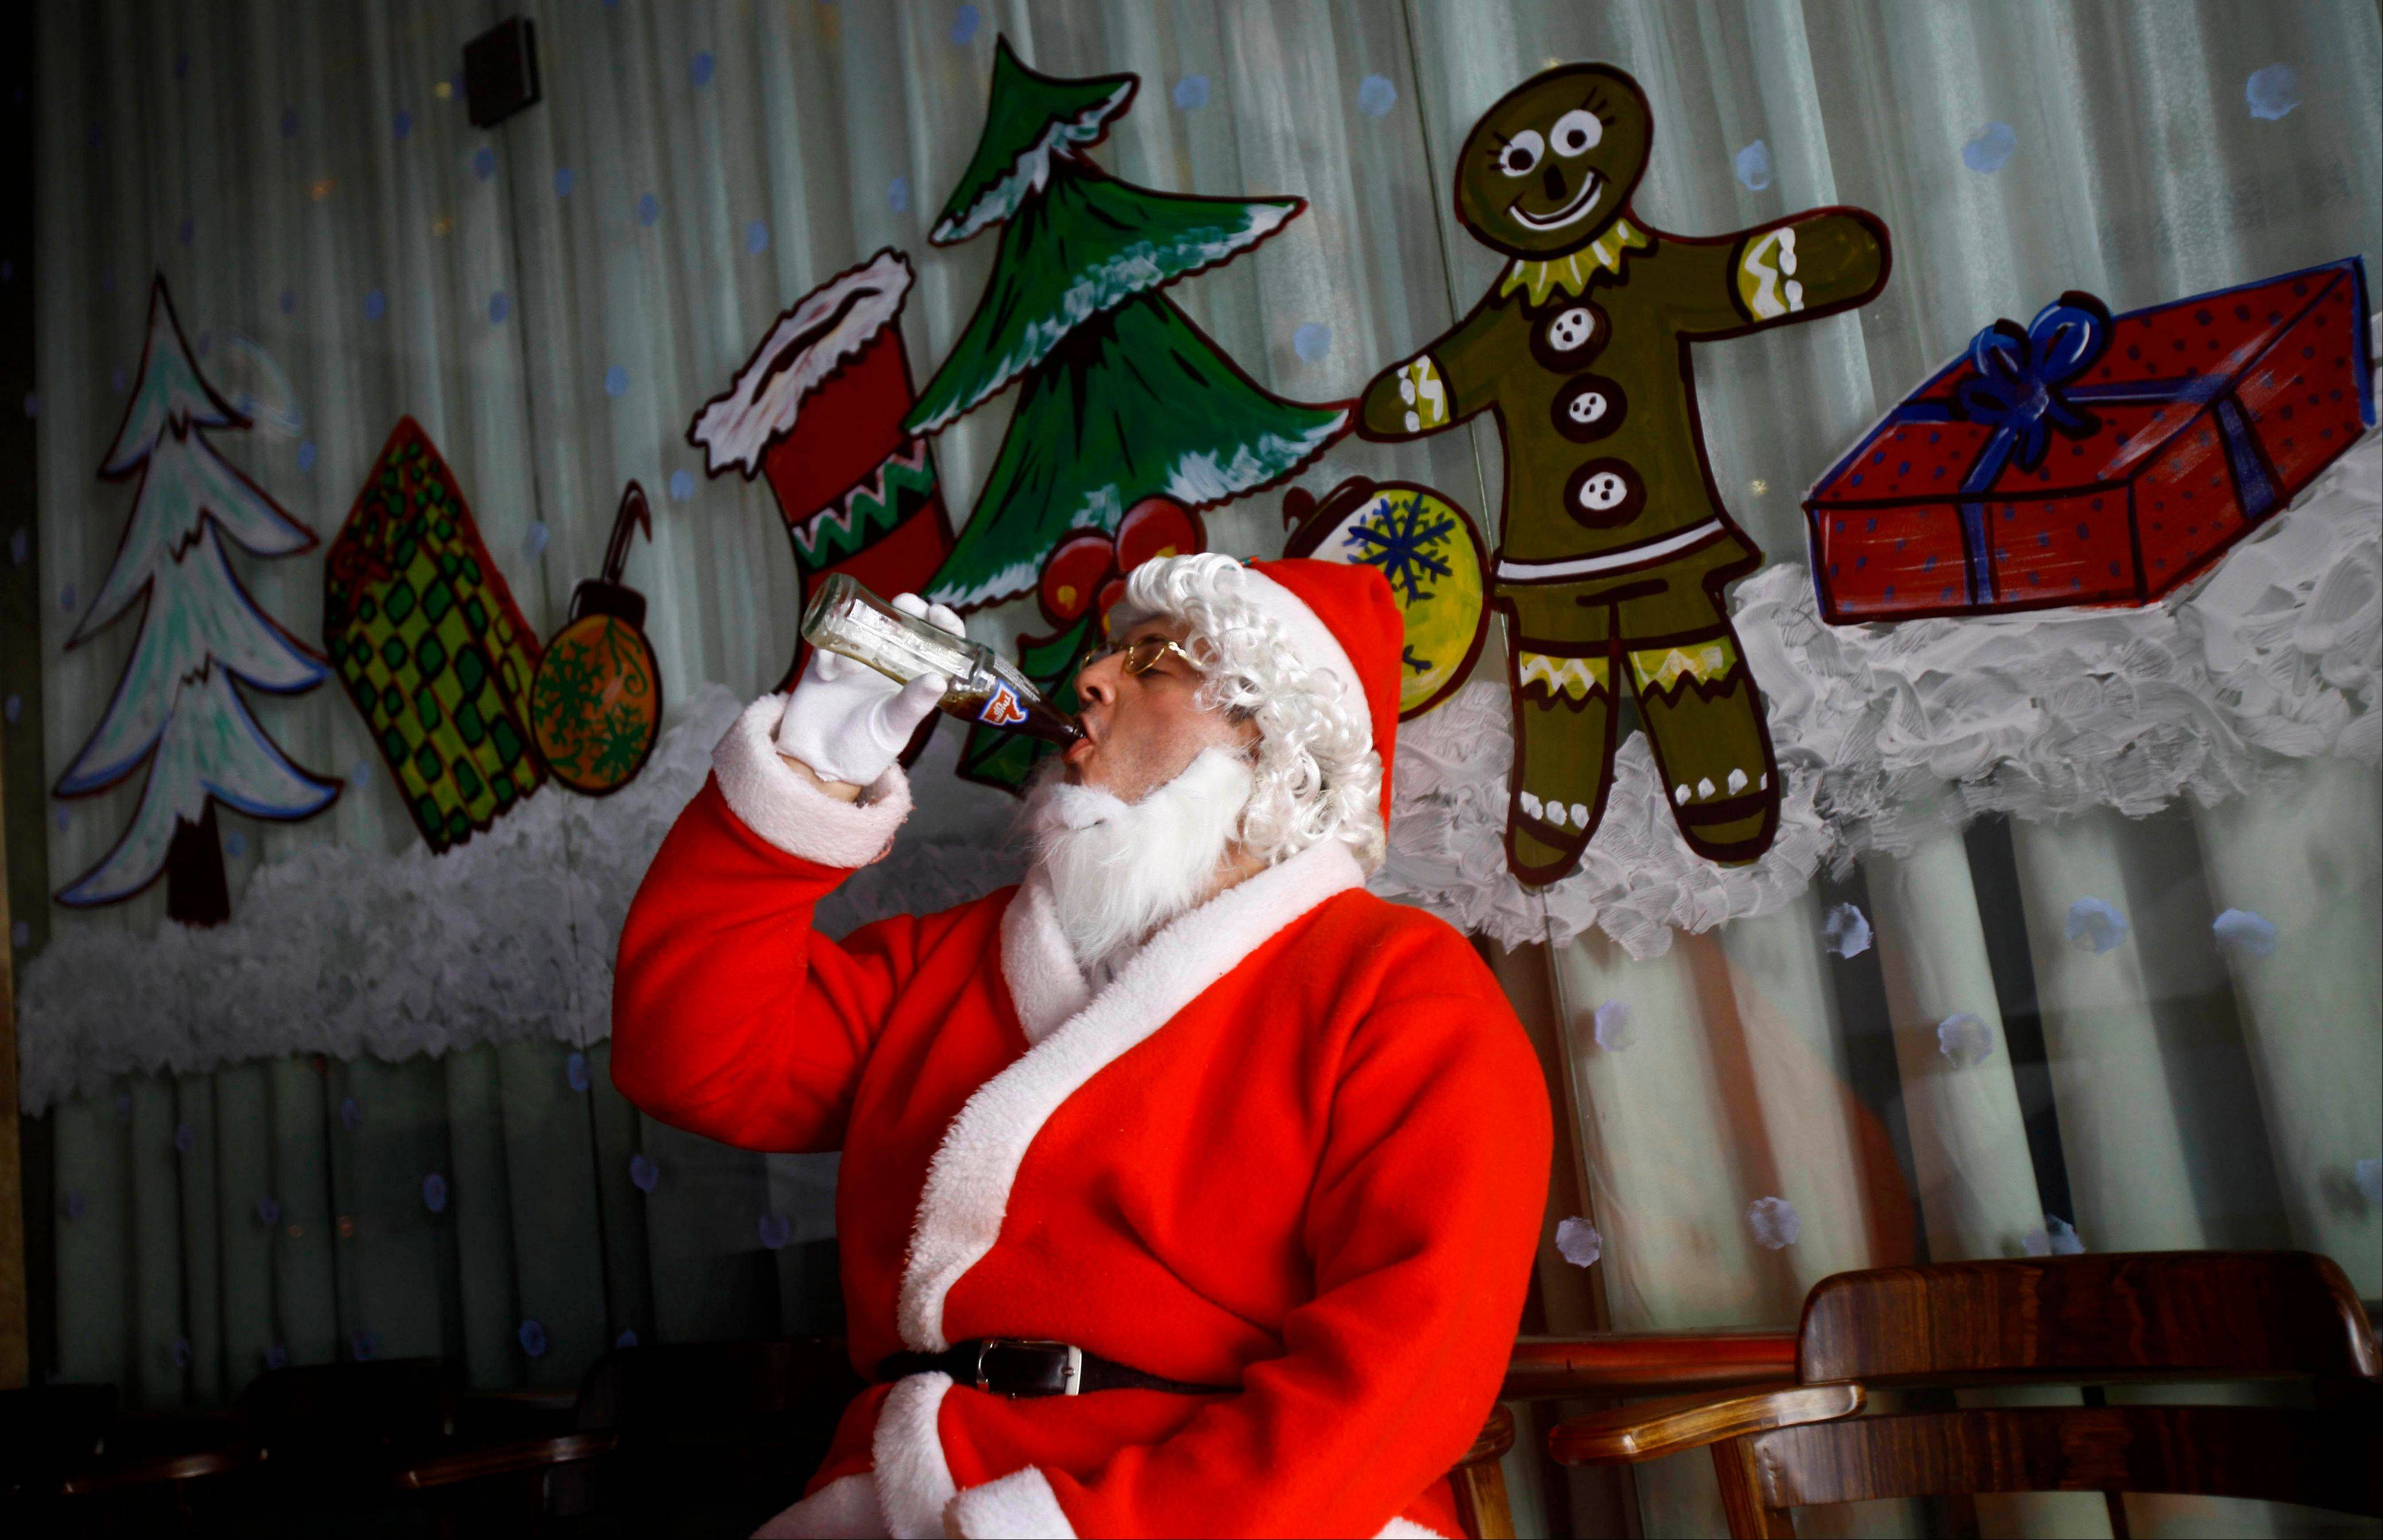 A man dressed as Santa drinks cola as he waits to take part in a Christmas celebration in Mumbai, India, Monday, Dec. 24, 2012. Although Christians comprise only two percent of the population Christmas is a national holiday and is observed across the country as an occasion to celebrate.